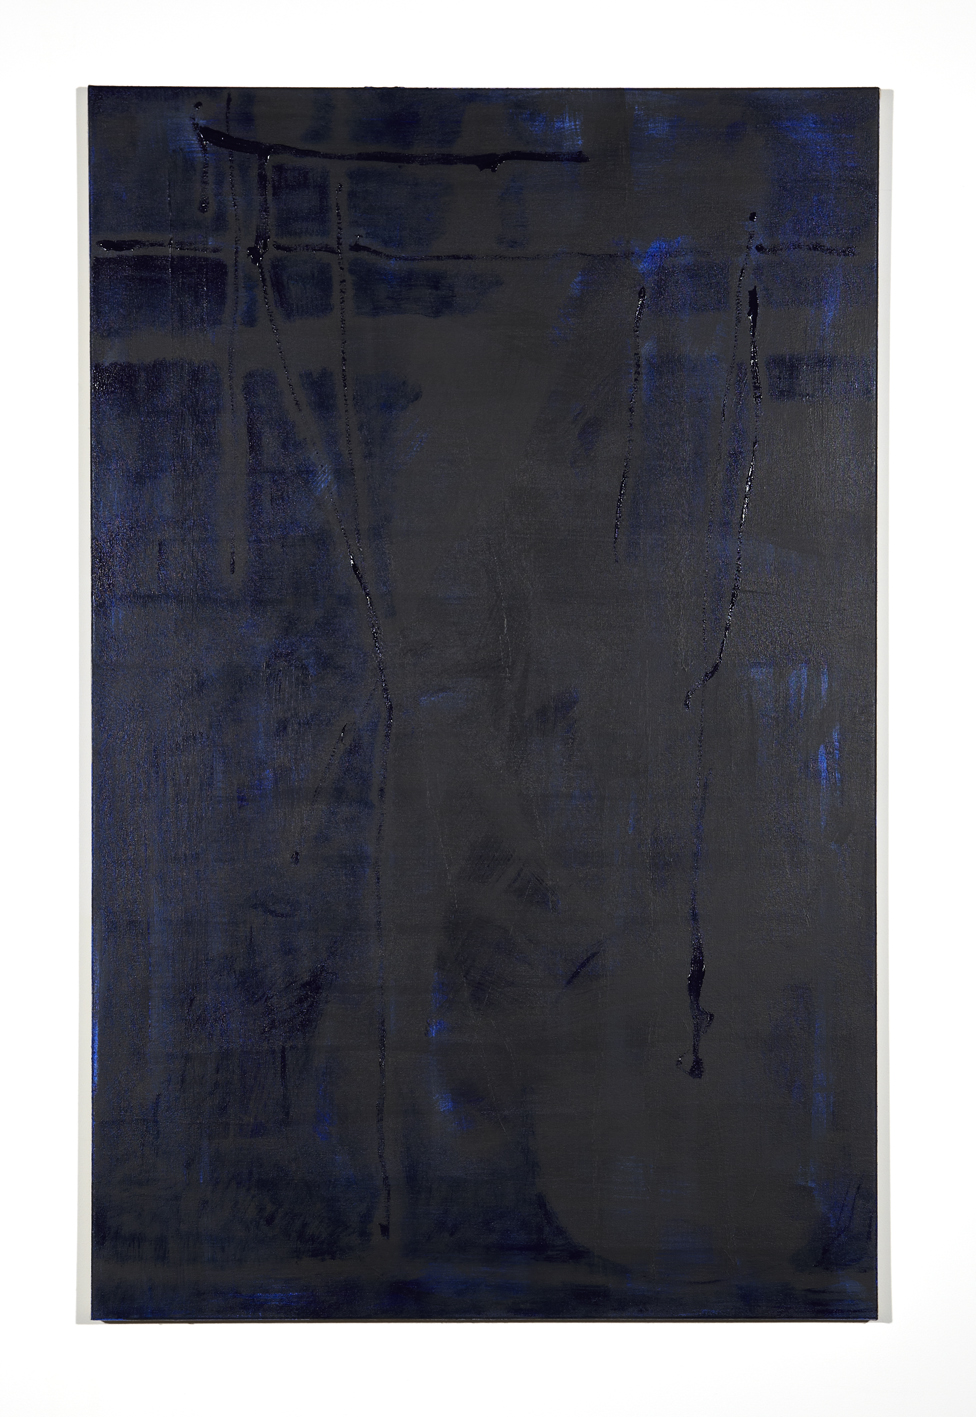 Martin Aagaard Hansen. Untitled, 2014, acryllic and rabbit glue on linen, 124 cm x 80 cm